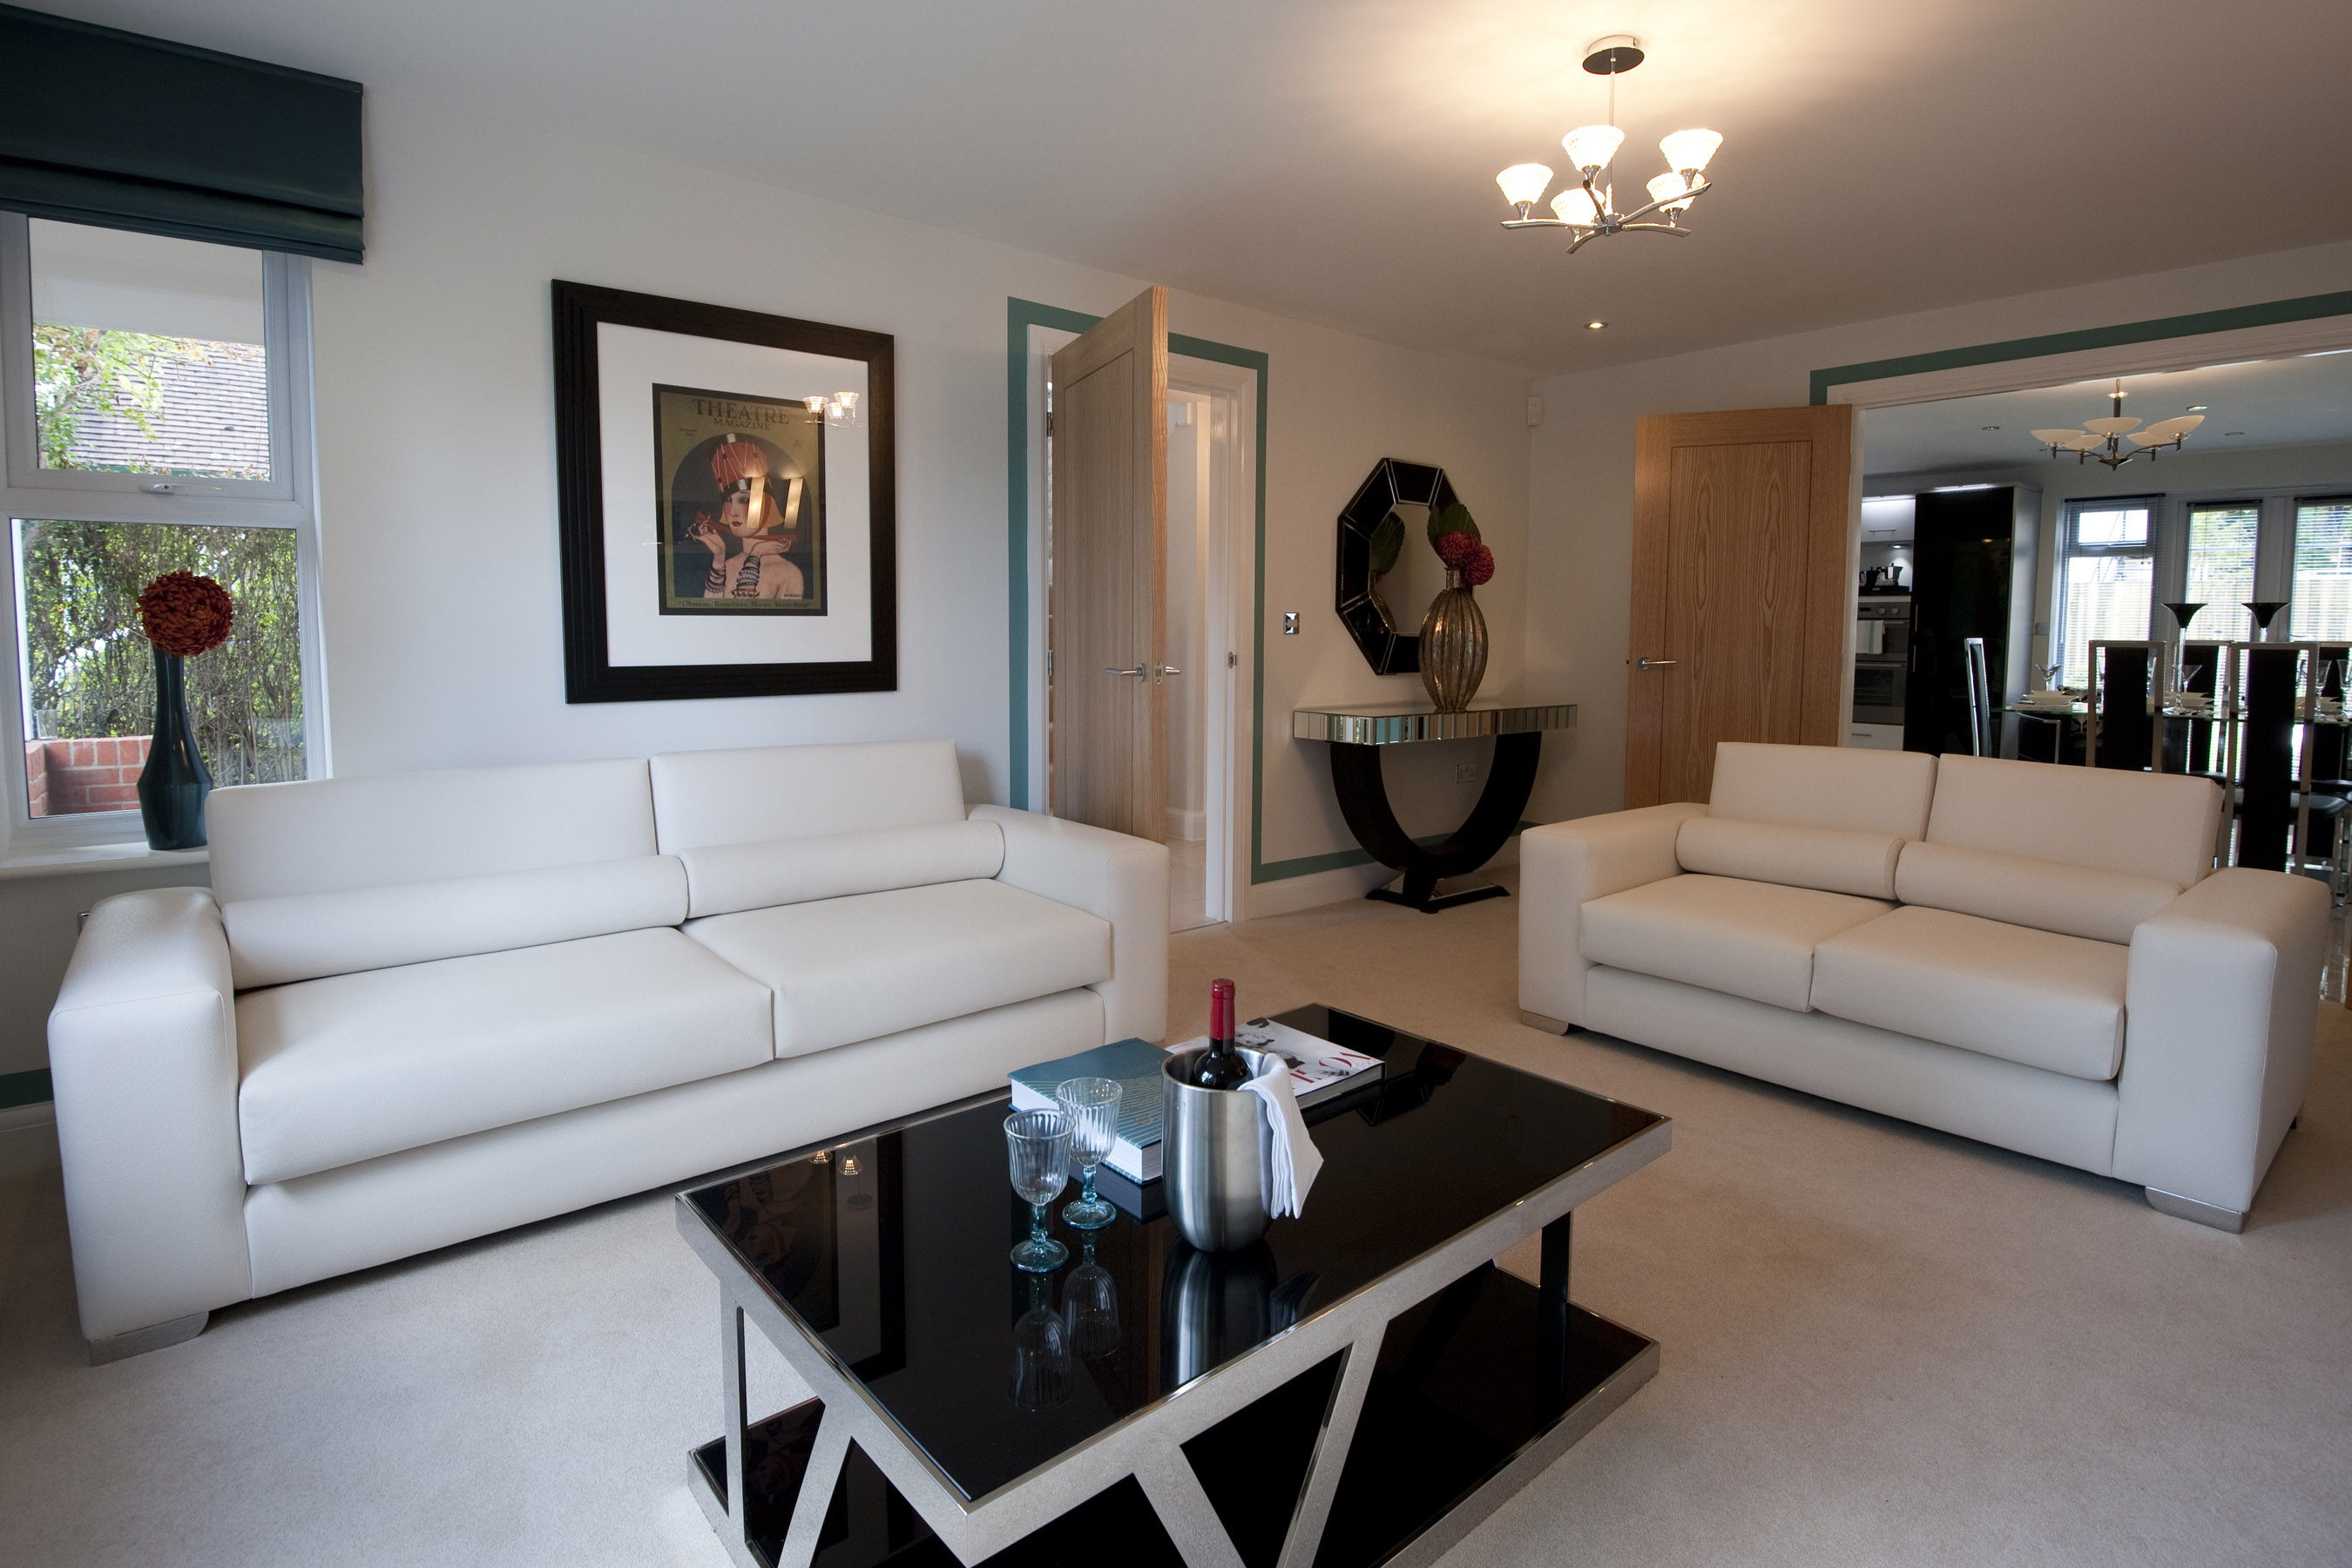 Luxury showhome for sale at taylor wimpey s banbury development newbuyadvice - Show the home photos ...